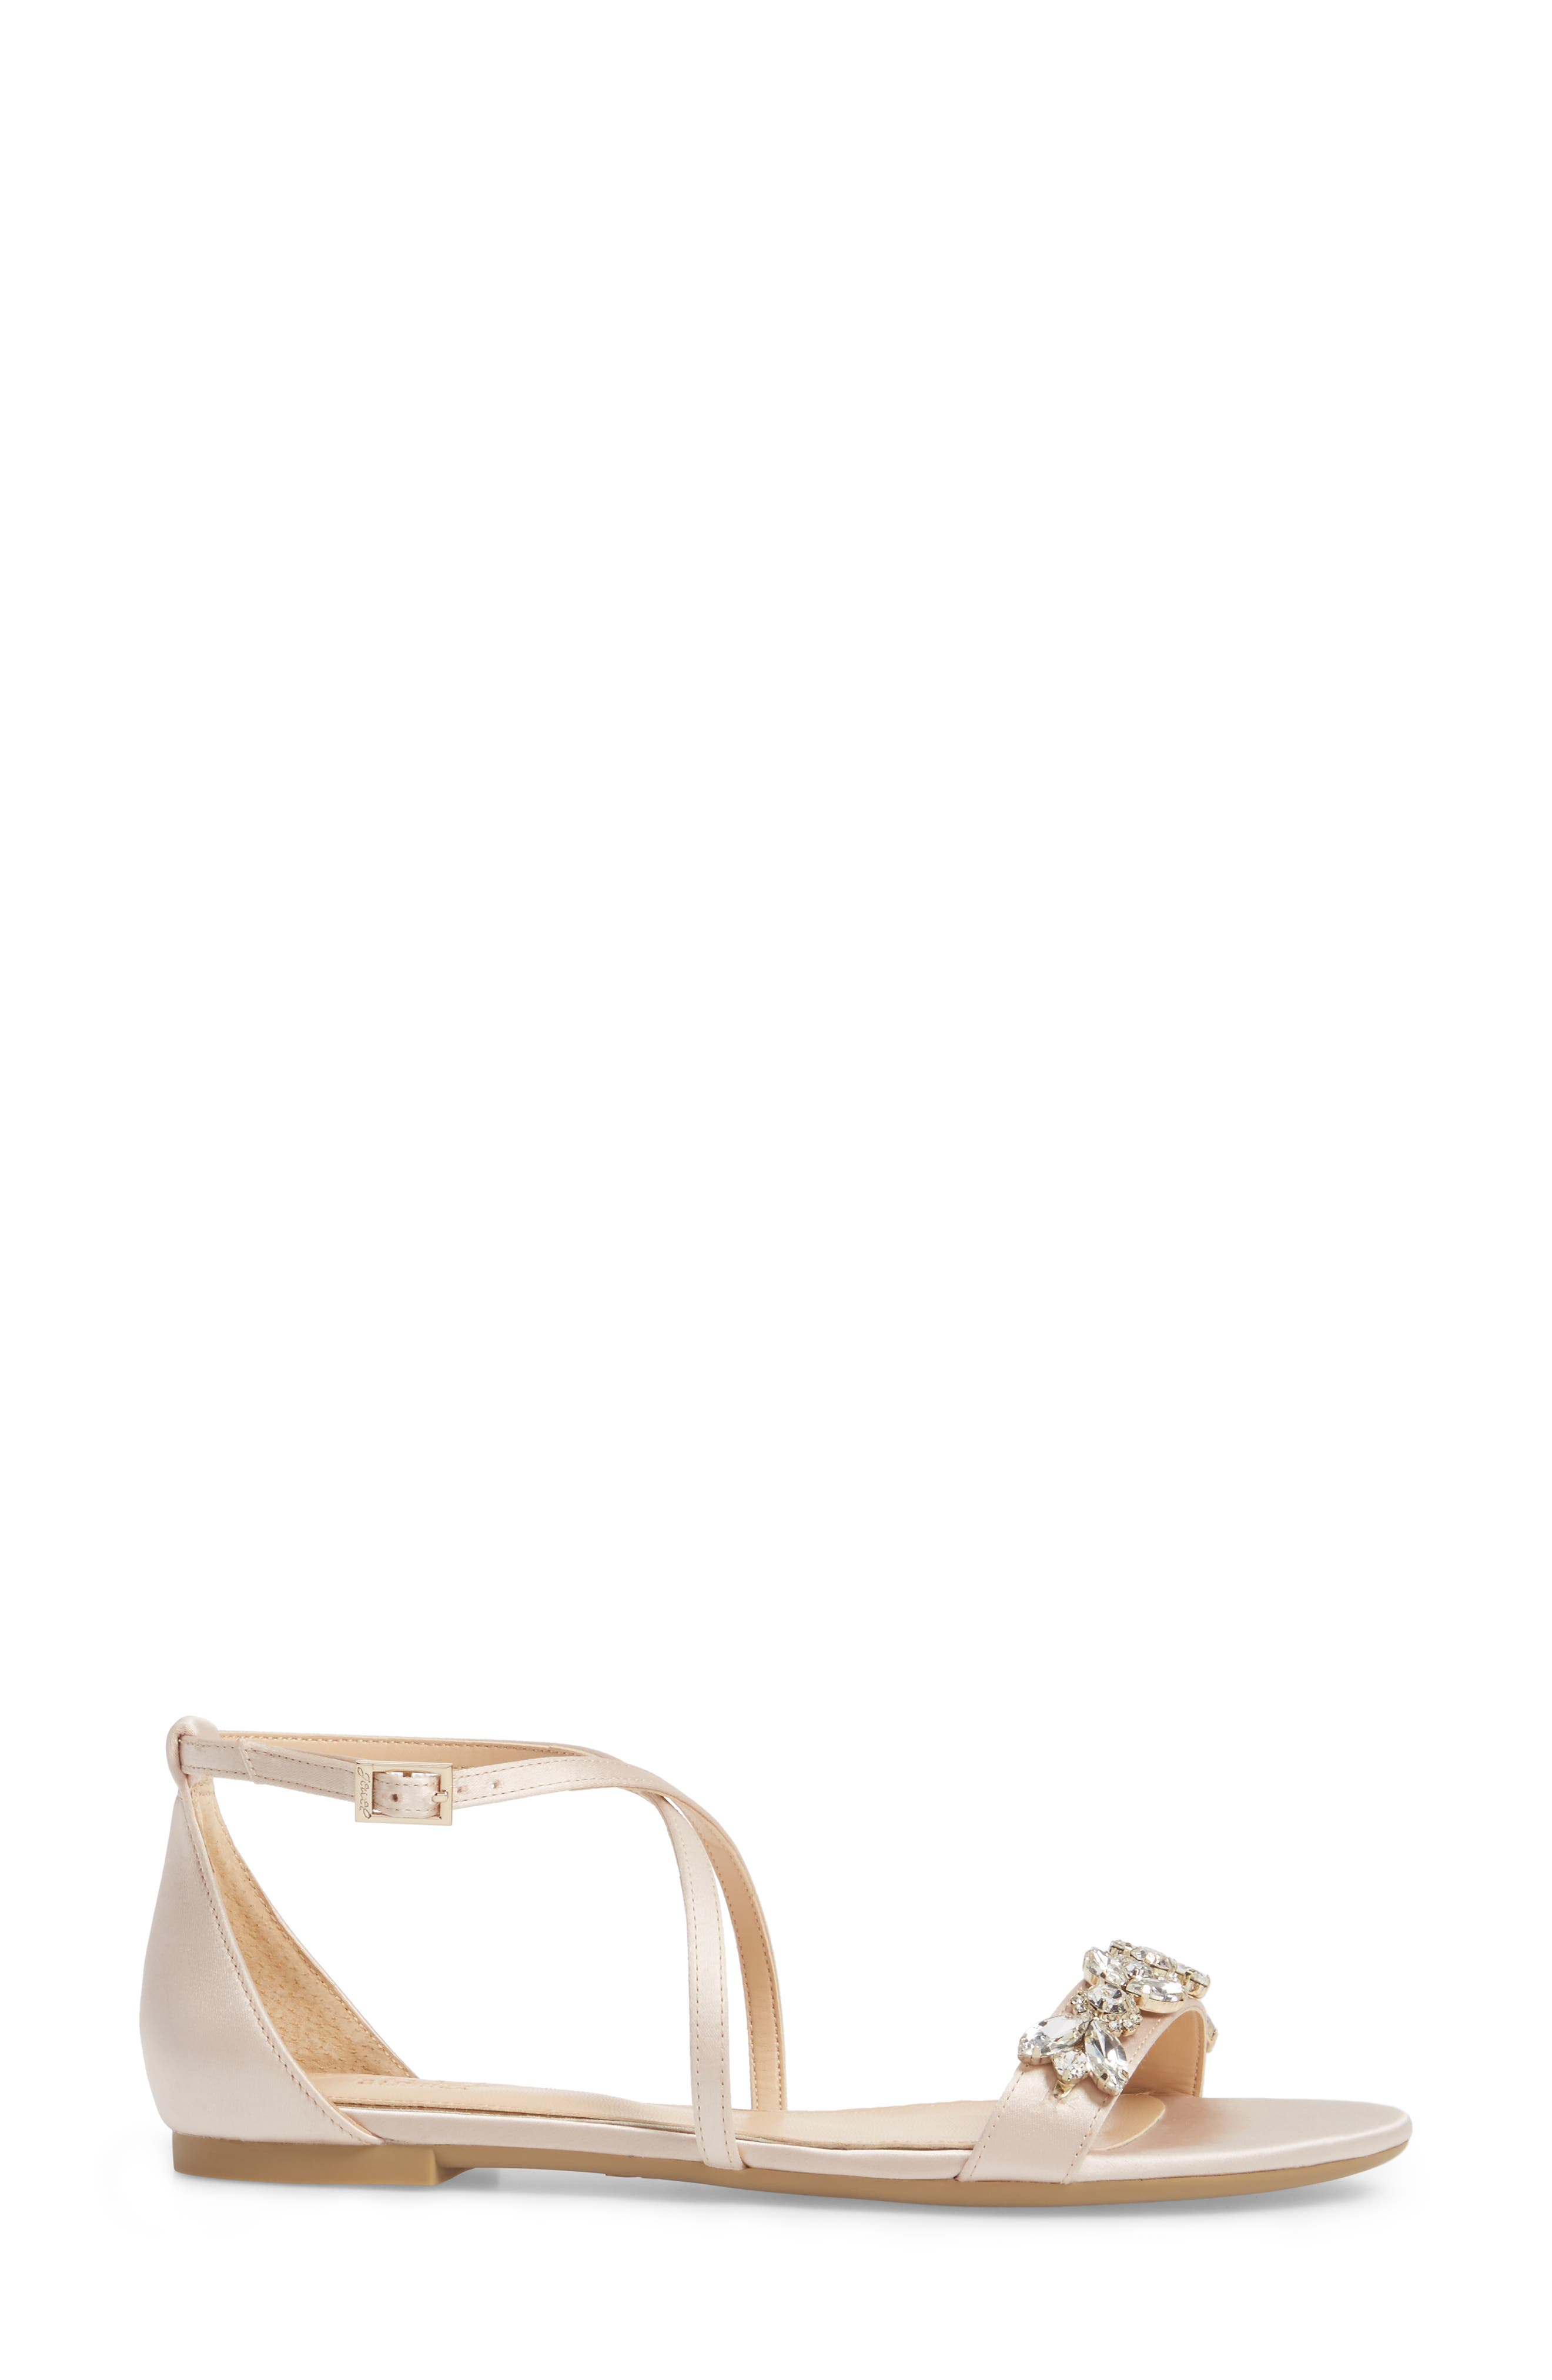 Tessy Embellished Sandal,                             Alternate thumbnail 3, color,                             CHAMPAGNE SATIN